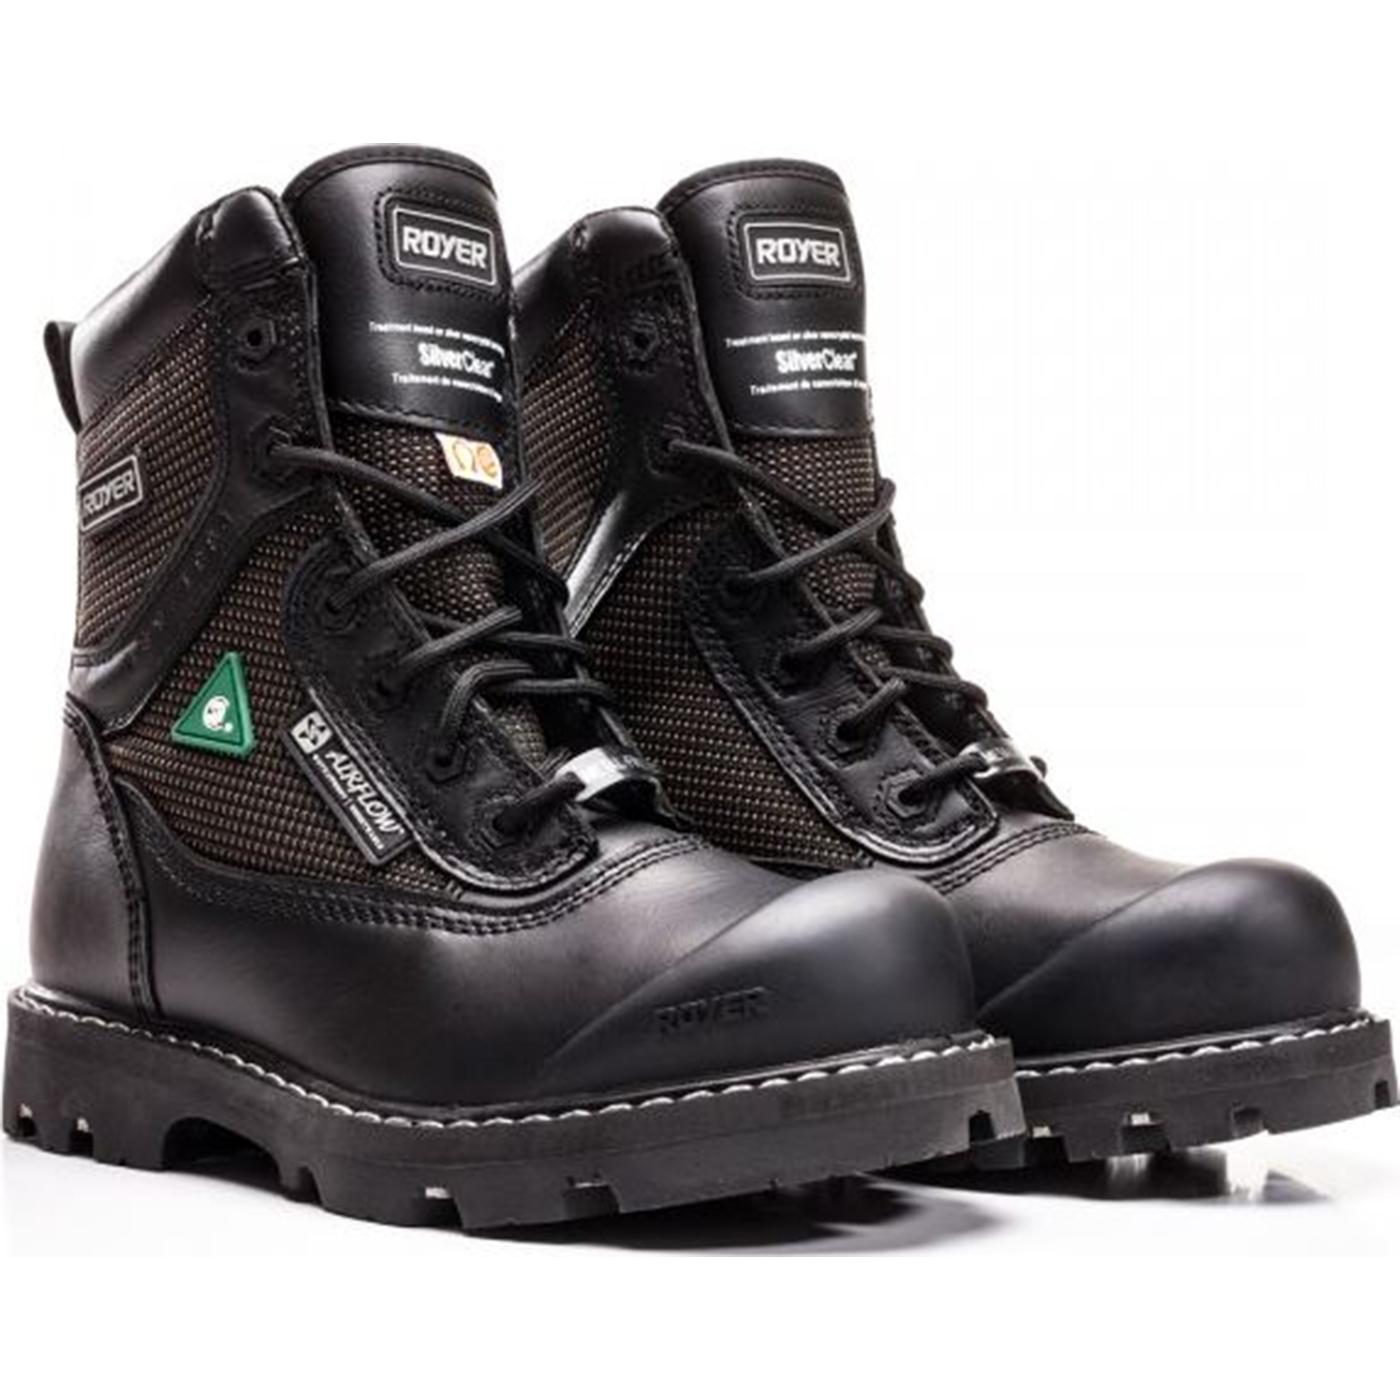 Composite Toe Csa Pr Waterproof Black Boot Royer